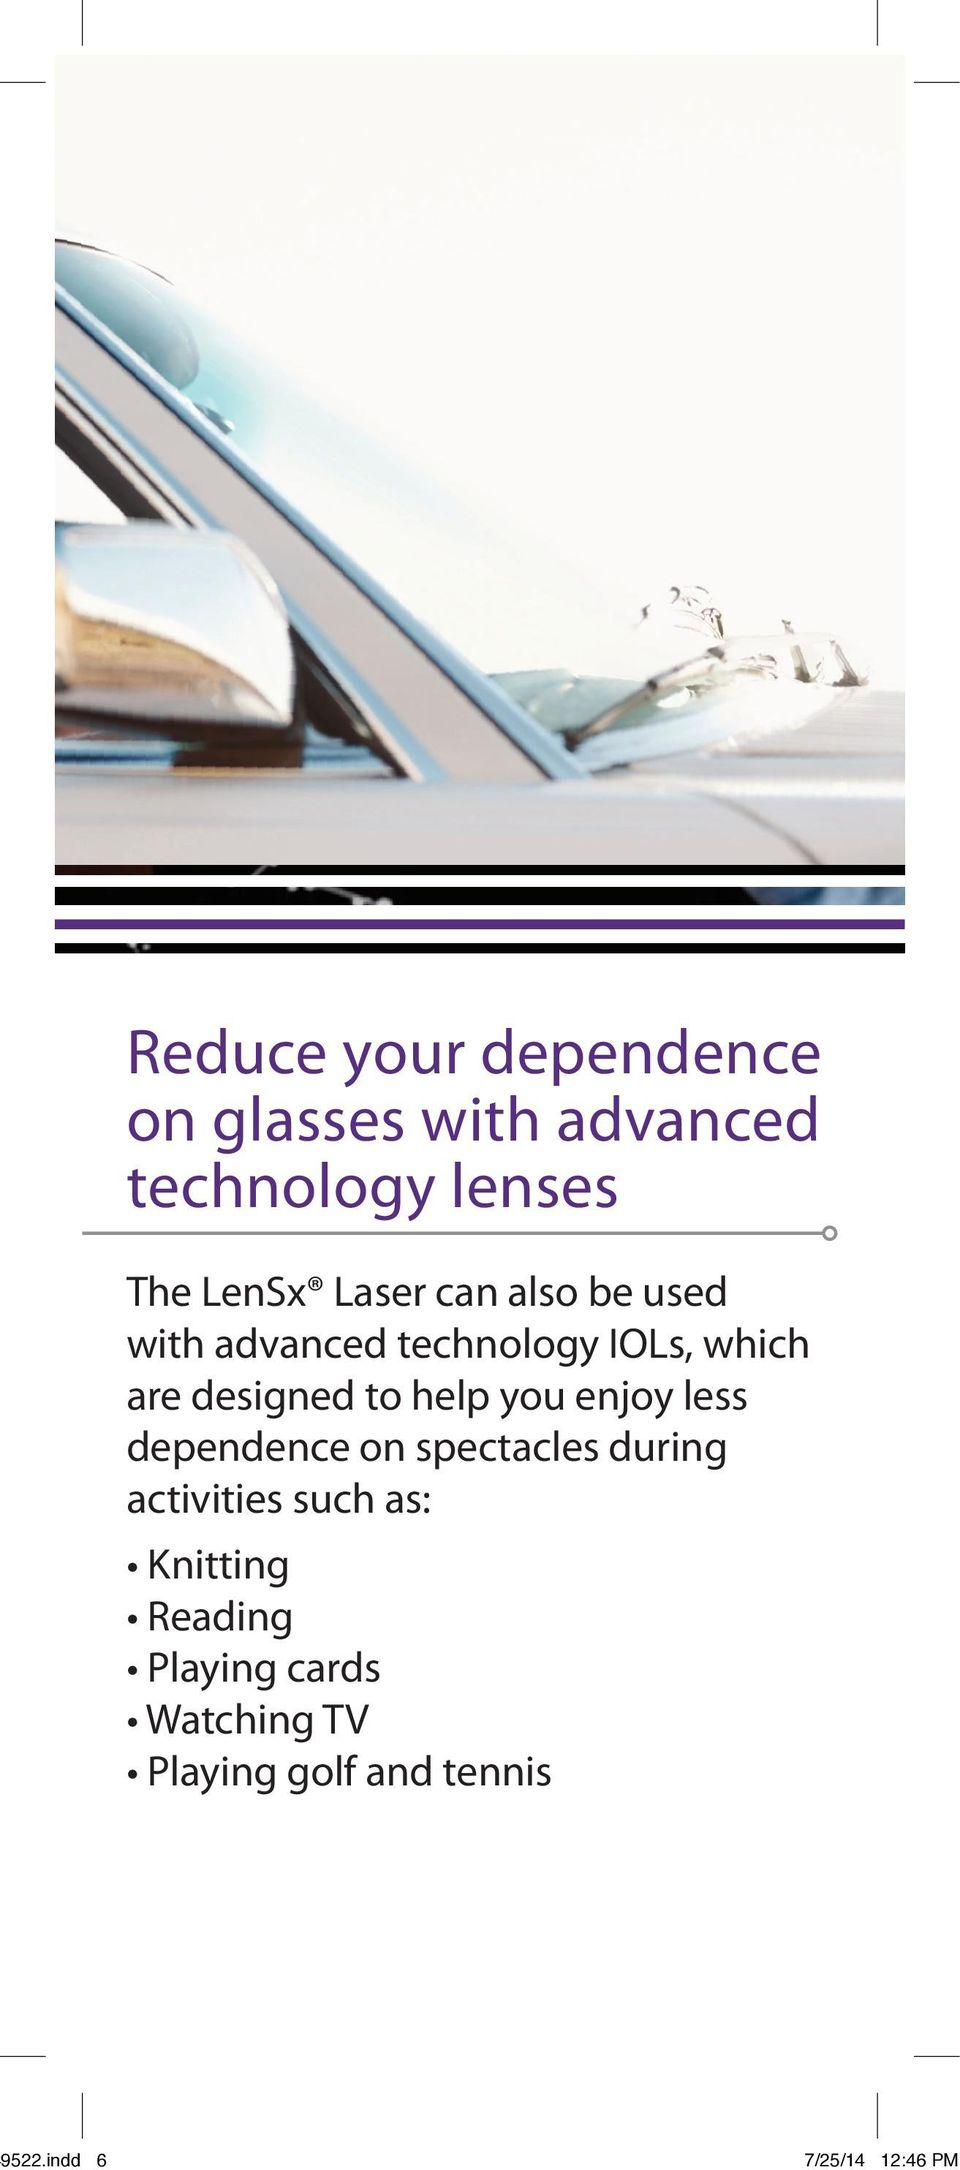 help you enjoy less dependence on spectacles during activities such as: